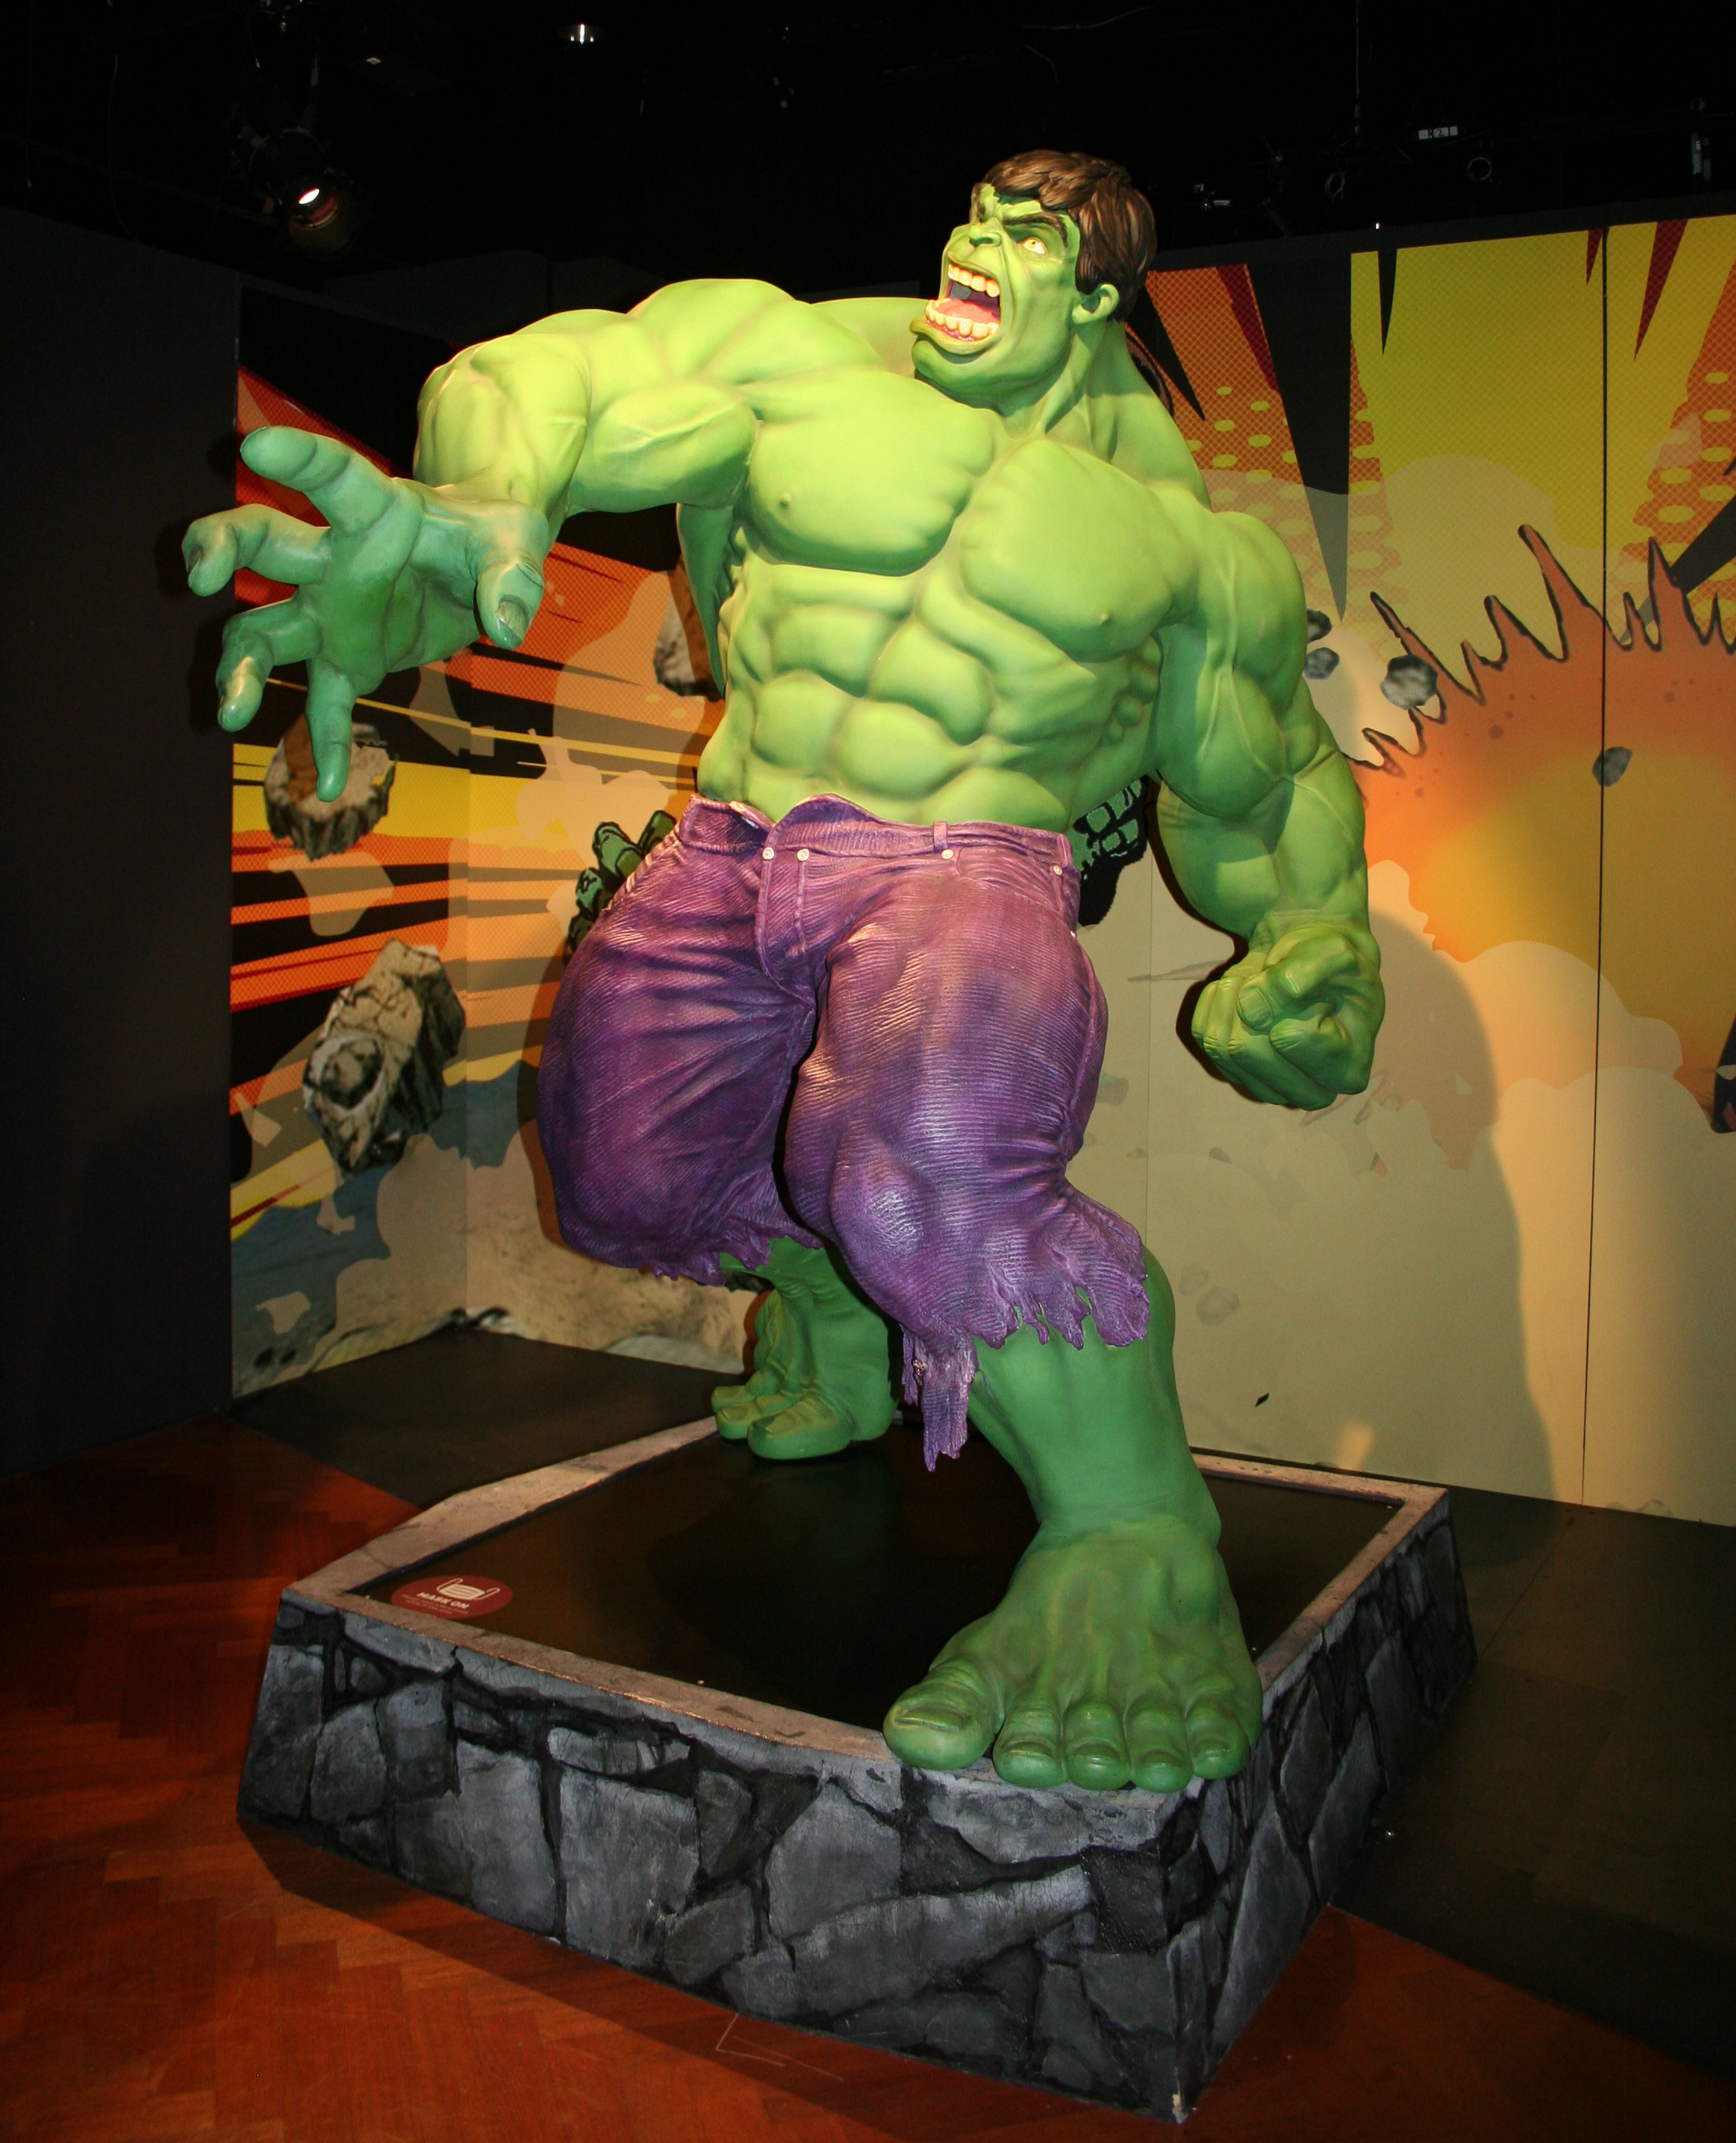 Hulk exhibit Marvel Universe of Superheroes Henry Ford Museum of Innovation Dearborn MI